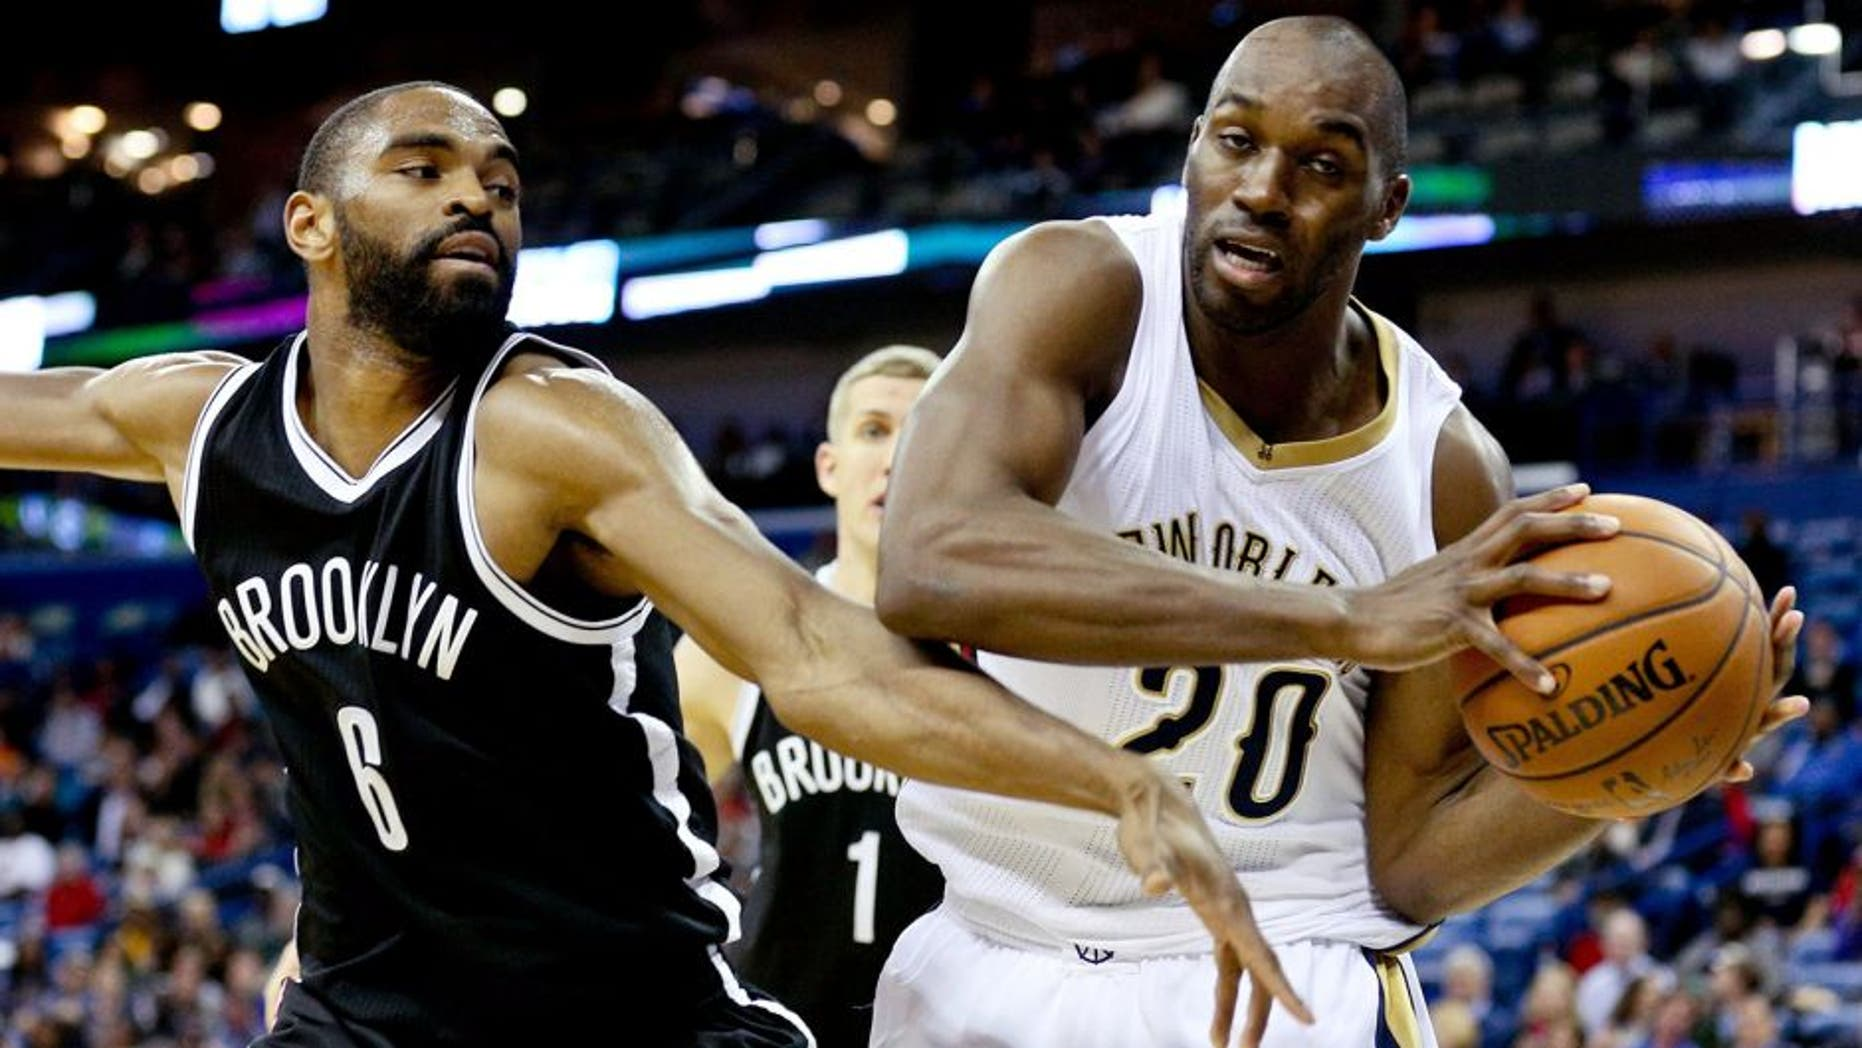 Feb 25, 2015; New Orleans, LA, USA; New Orleans Pelicans guard Quincy Pondexter (20) is defended by Brooklyn Nets guard Alan Anderson (6) during the fourth quarter of a game at the Smoothie King Center. The Pelicans defeated the Nets 102-96. Mandatory Credit: Derick E. Hingle-USA TODAY Sports